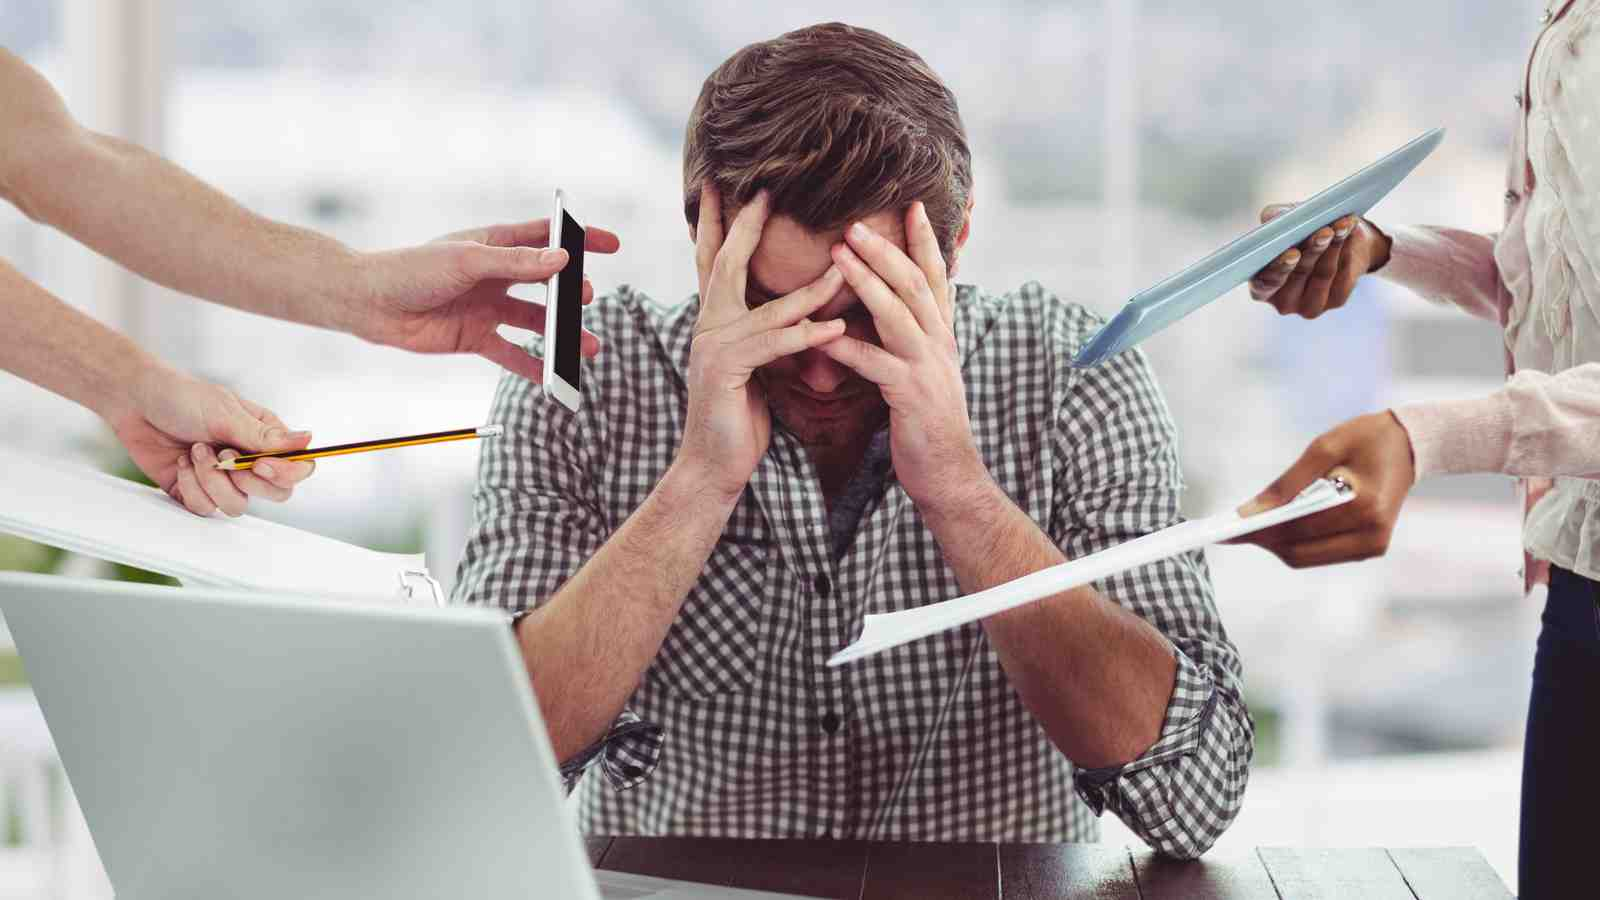 How do you handle stress in the workplace?